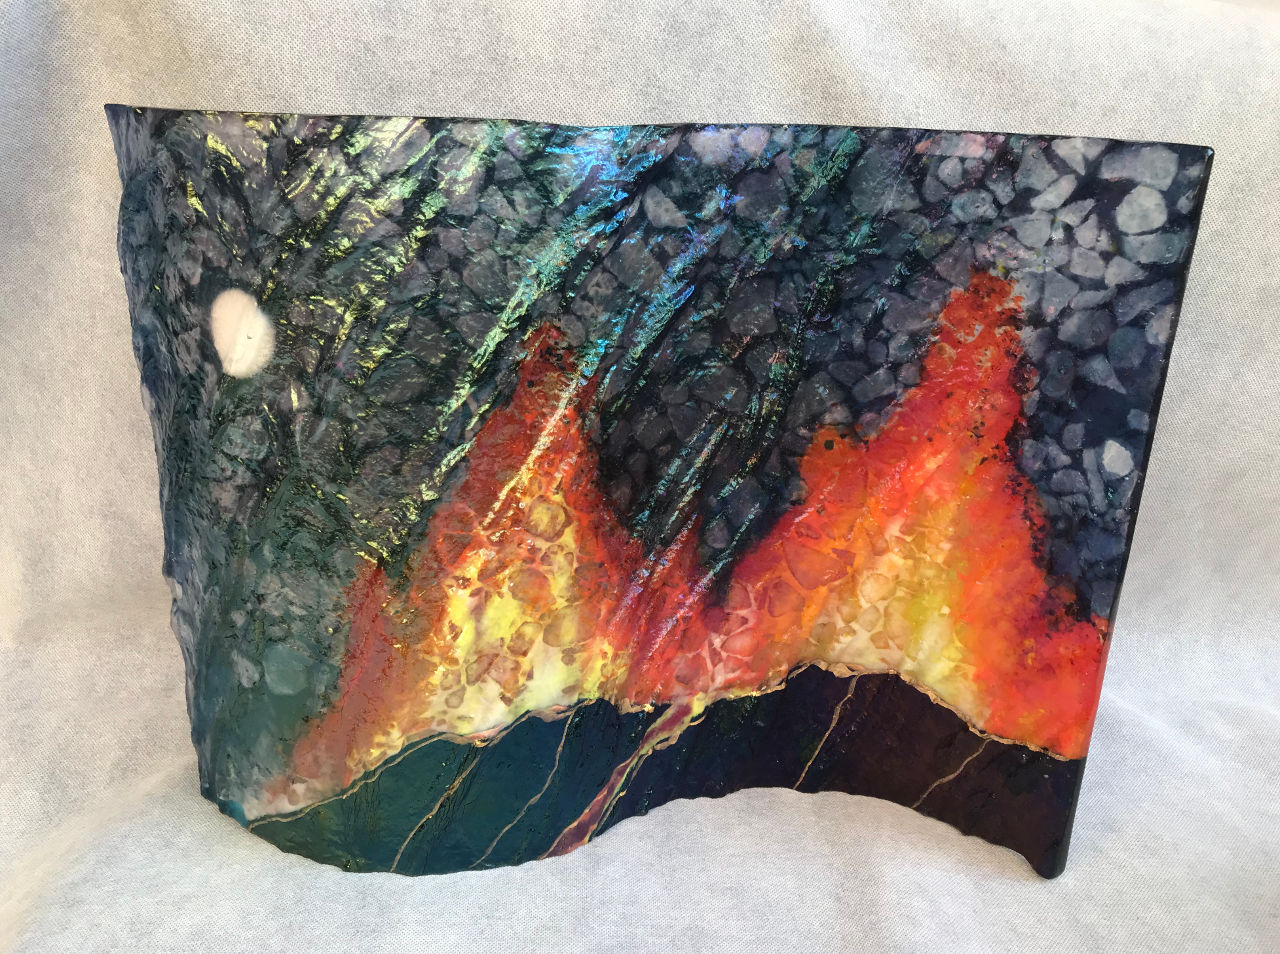 Large Scape Volcano by Marian Fieldson glass wave volcano design